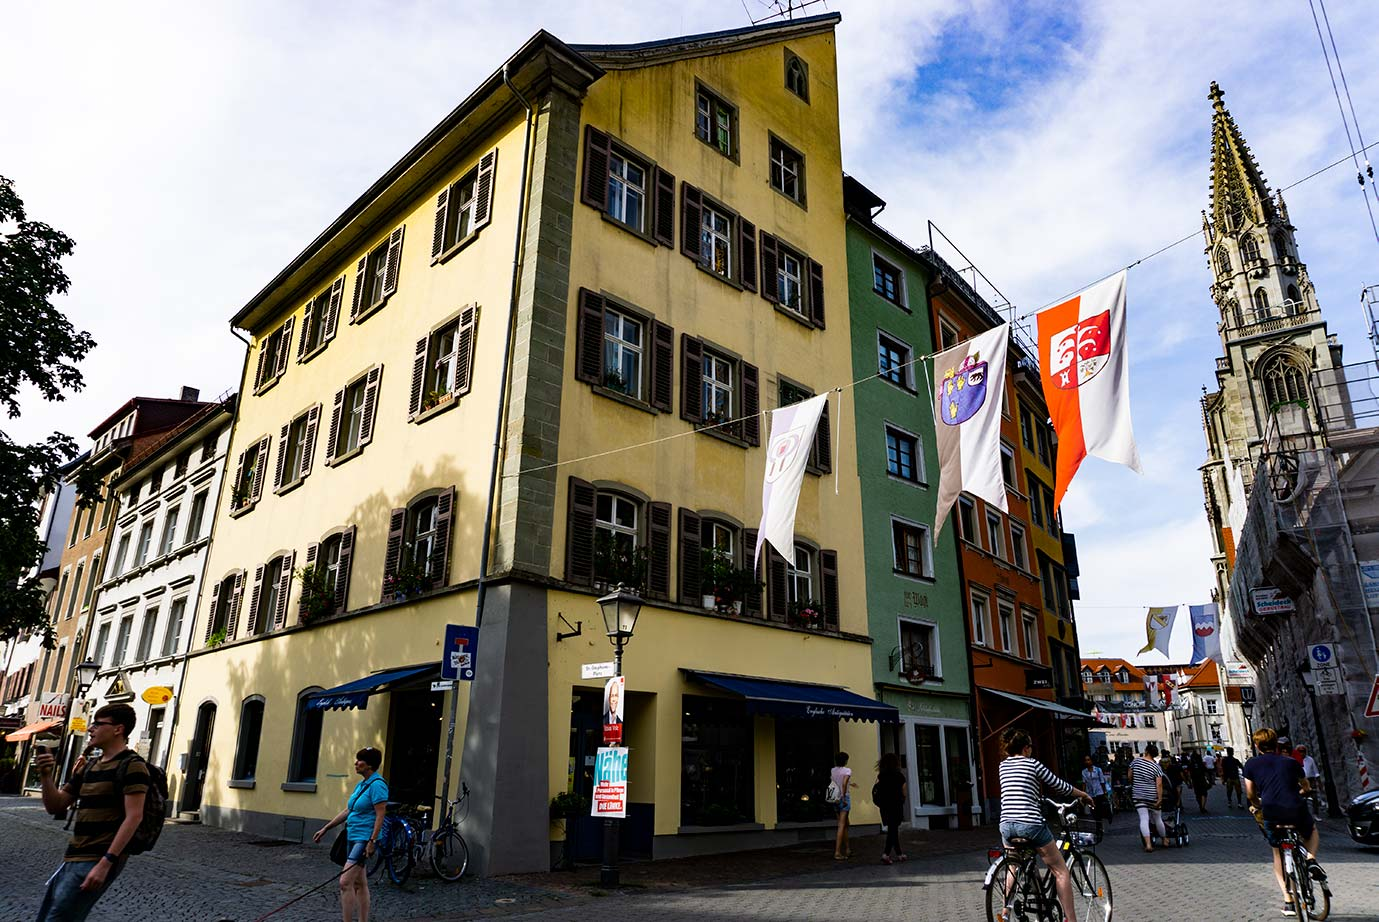 A street in Konstanz, Germany with medieval banners hanging and bicyclists below.